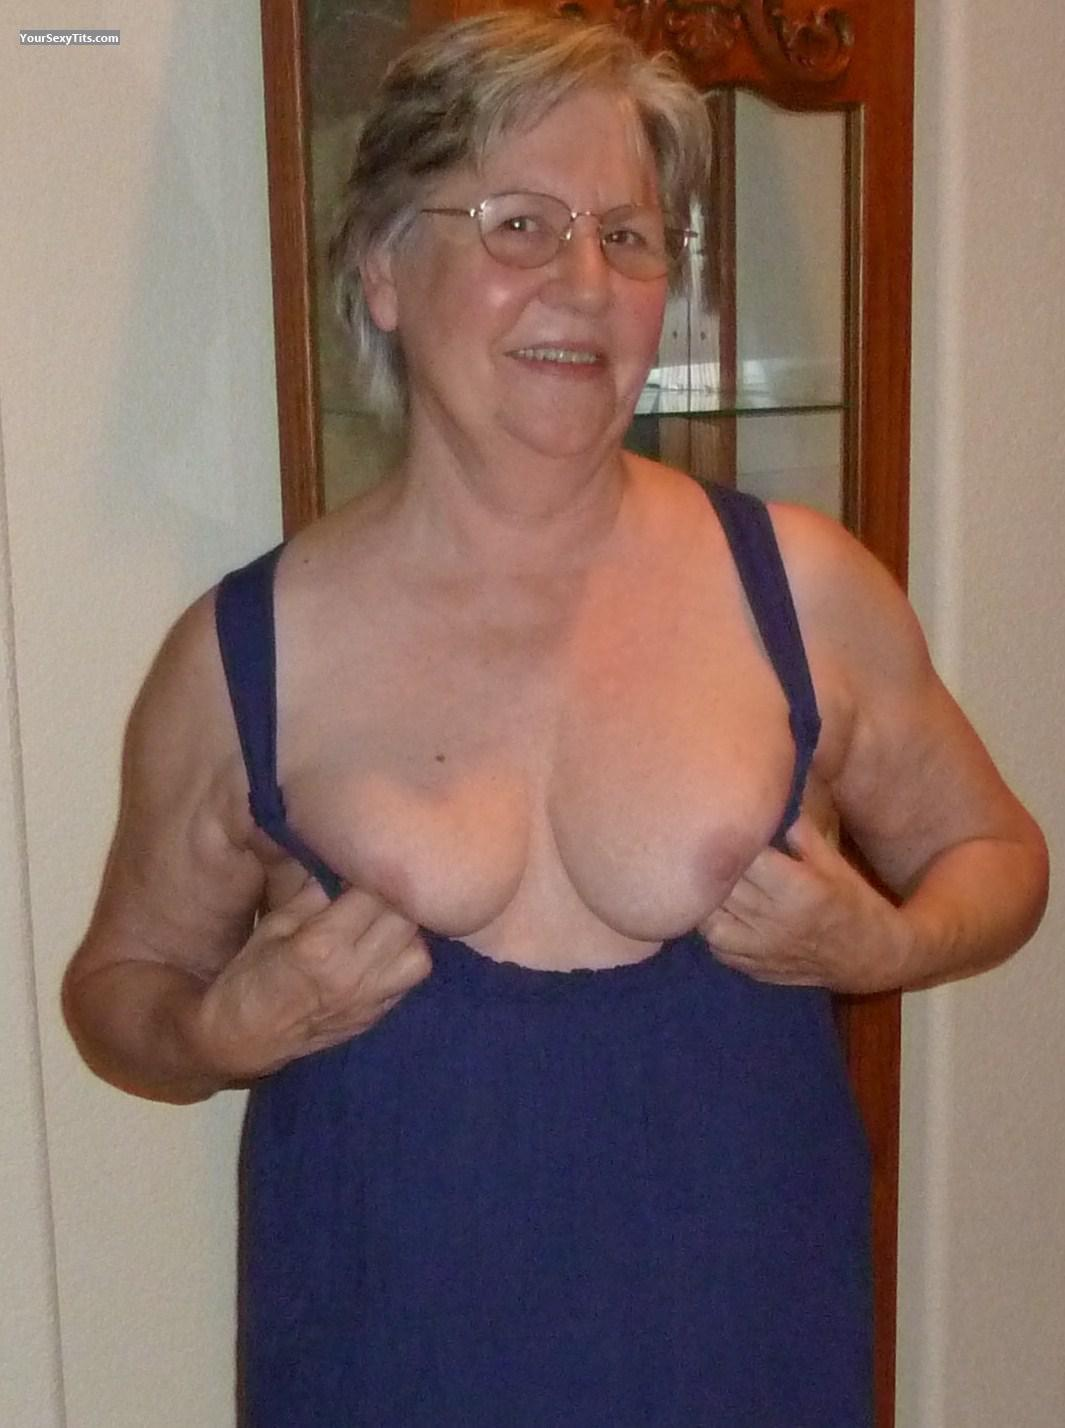 Tit Flash: Medium Tits - Topless Aunt Julia from United States